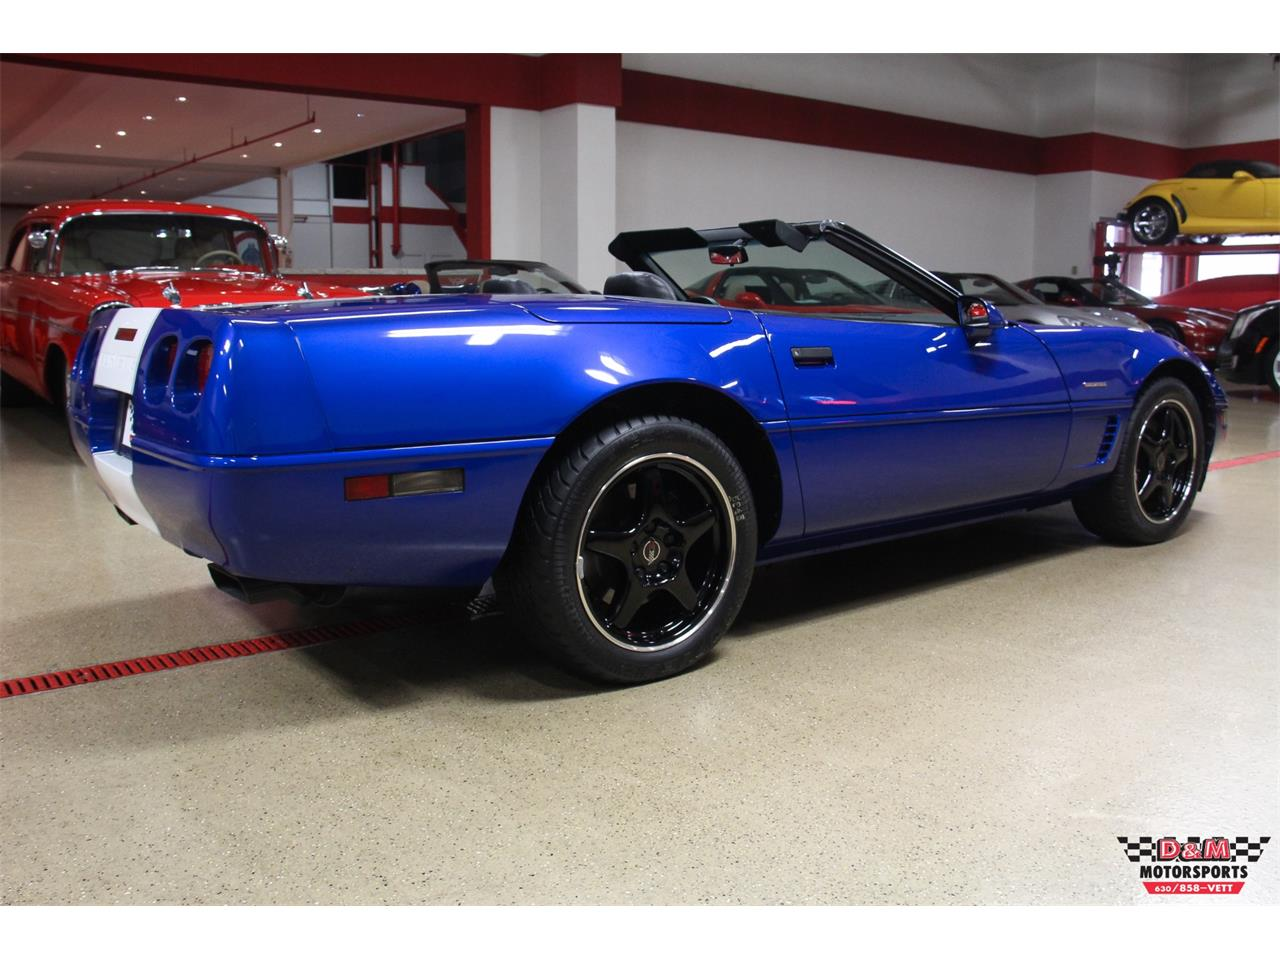 Large Picture of '96 Chevrolet Corvette Offered by D & M Motorsports - LV9Z